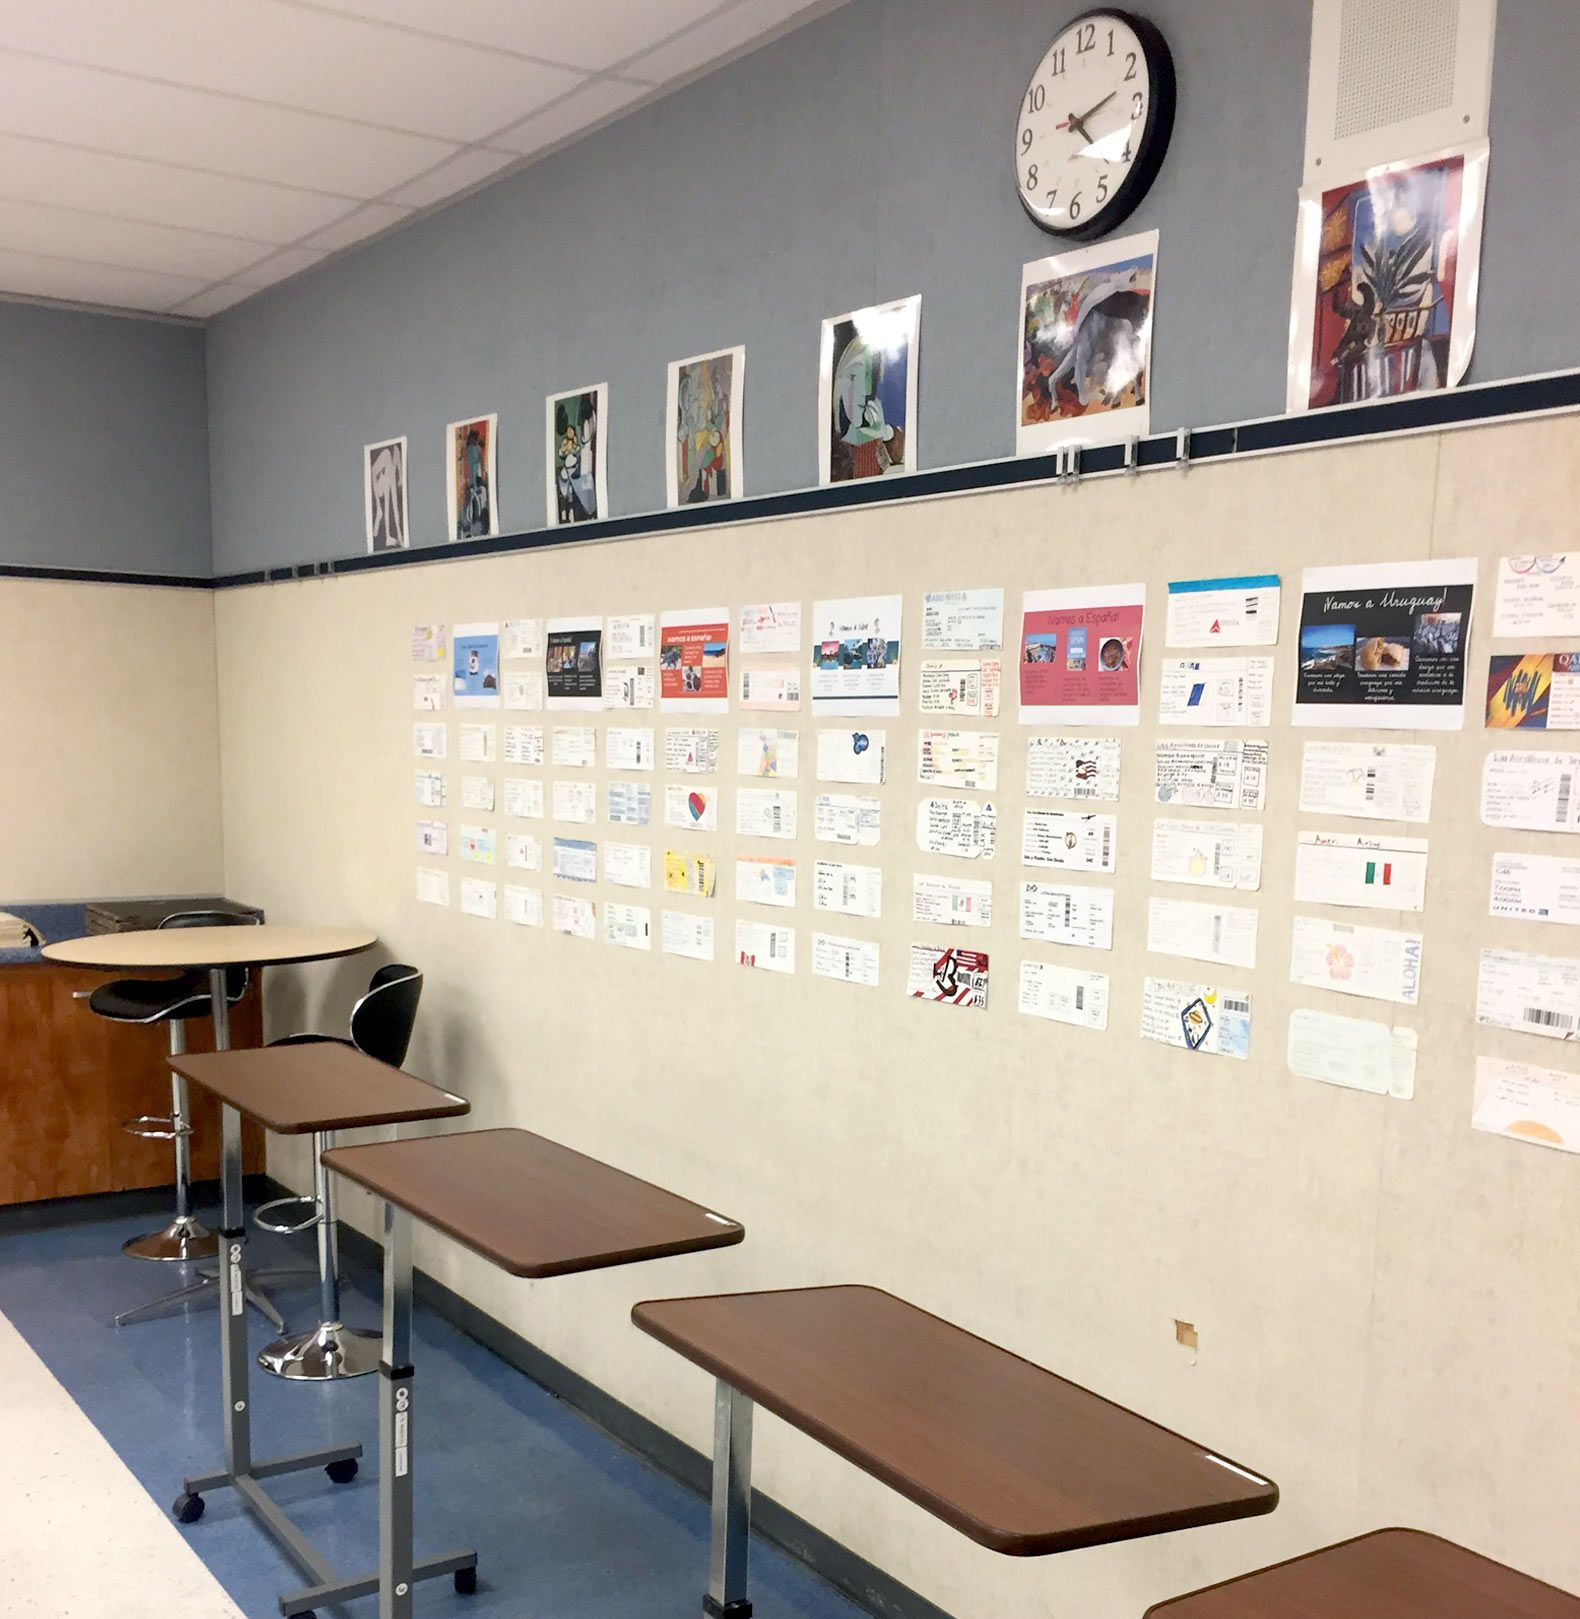 17 Best Seating Wall Ideas Images On Pinterest: High School Flexible Seating Done Right